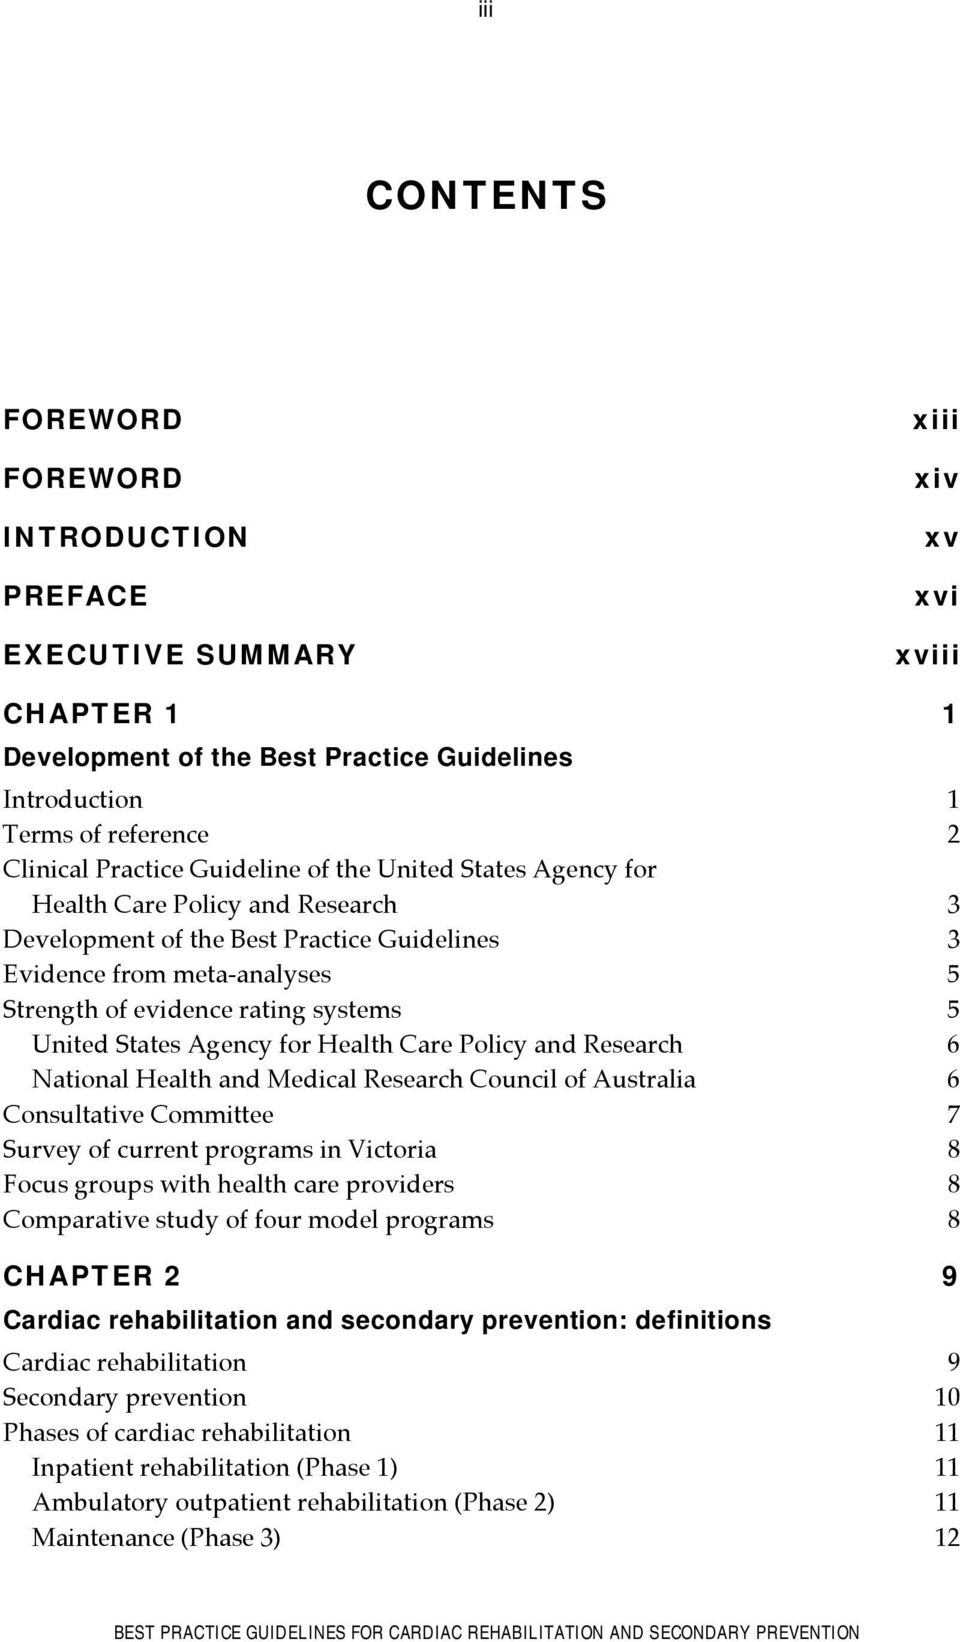 United States Agency for Health Care Policy and Research 6 National Health and Medical Research Council of Australia 6 Consultative Committee 7 Survey of current programs in Victoria 8 Focus groups